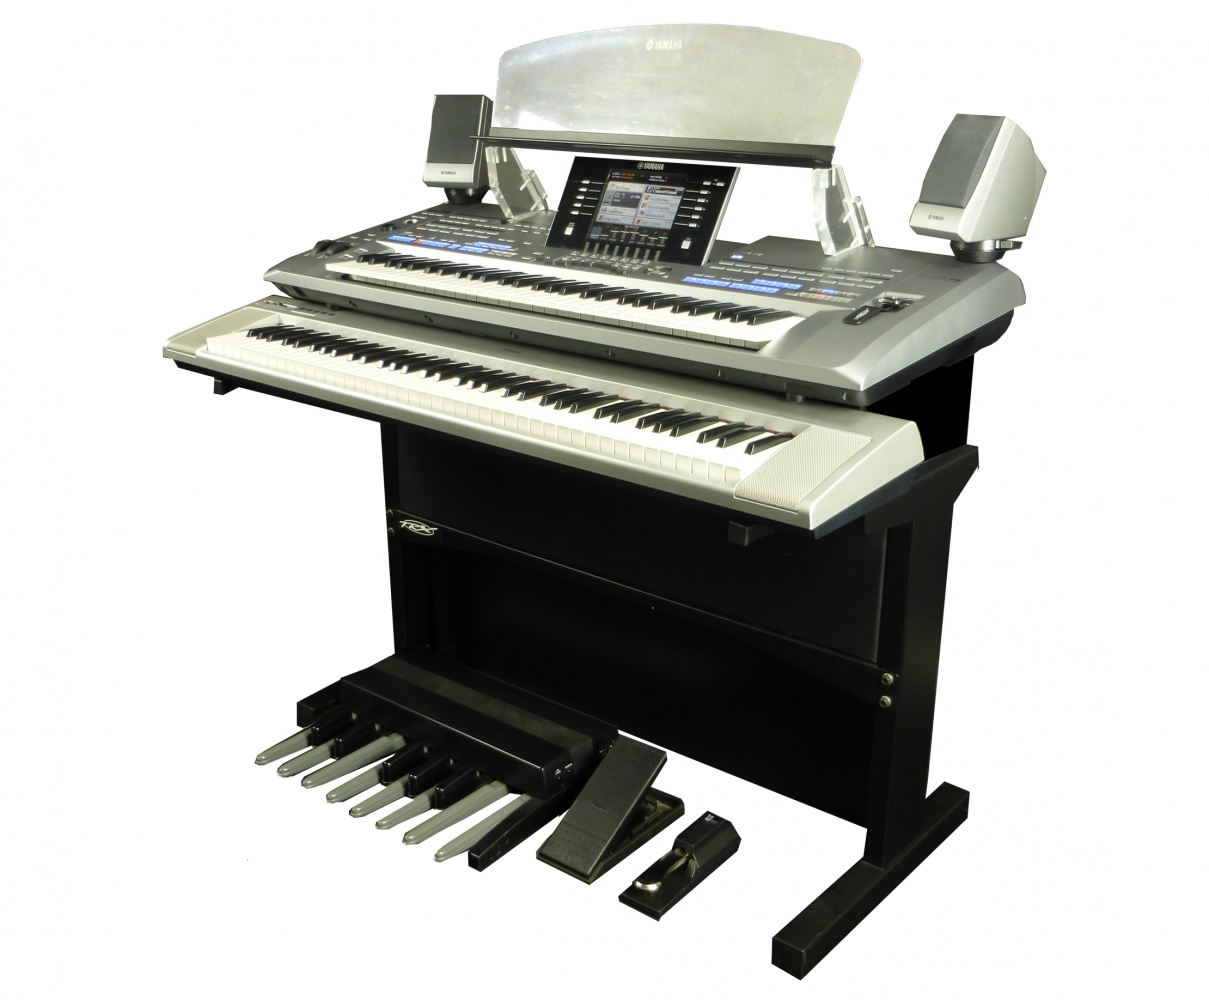 Twin classic super elite trx full system with new yamaha for Yamaha tyros 5